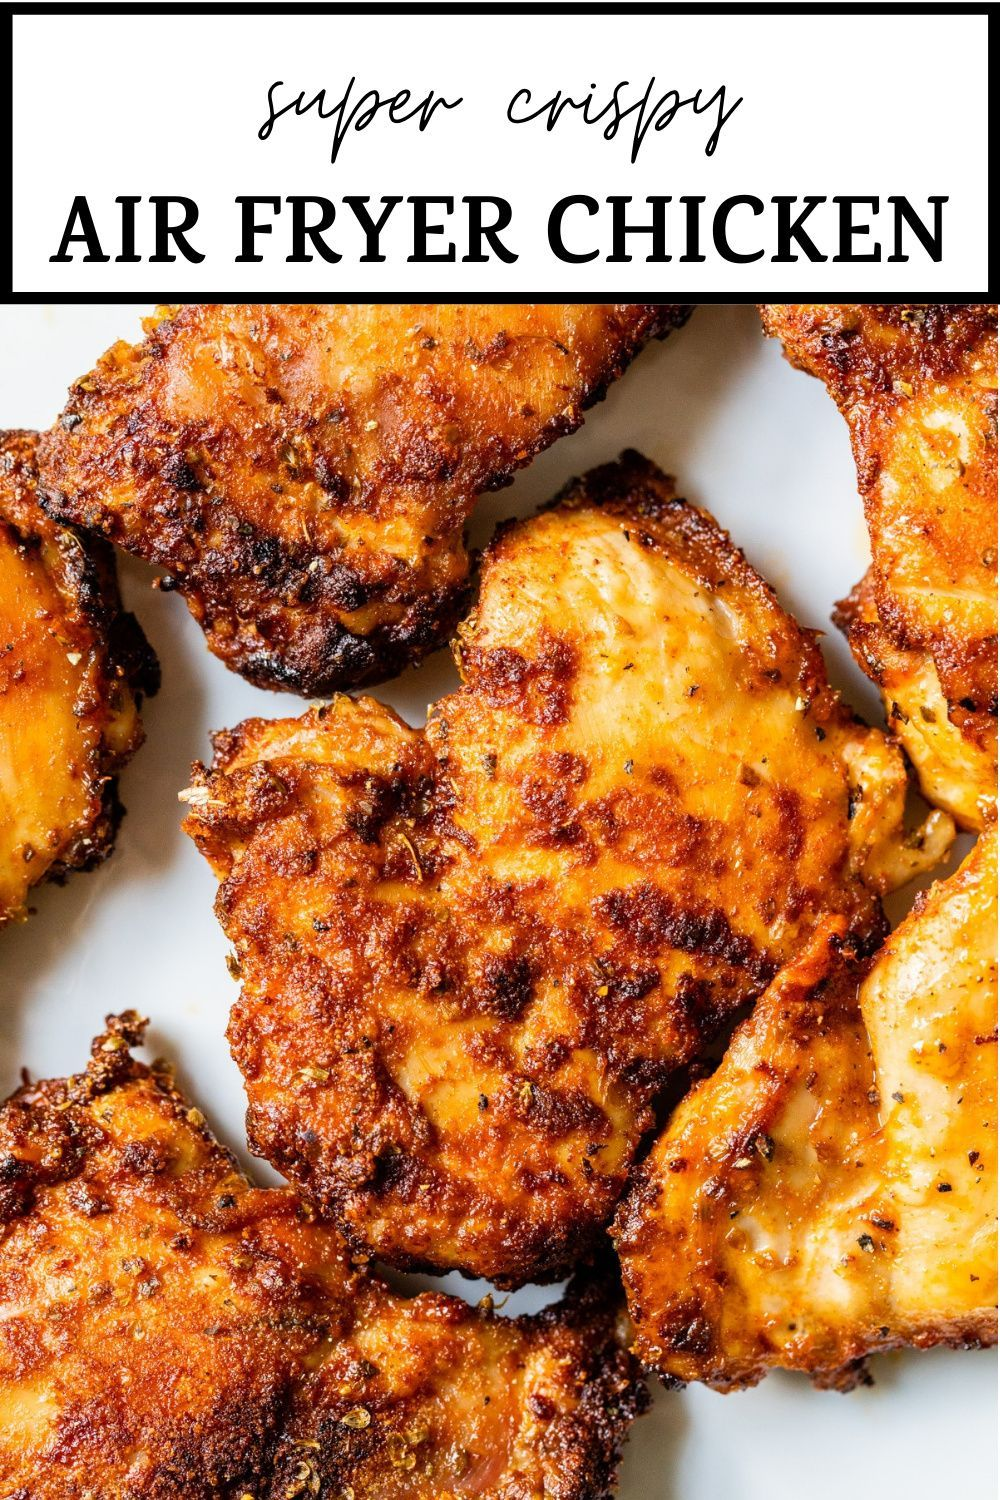 Air Fryer Chicken Thighs -   19 air fryer recipes chicken boneless keto ideas